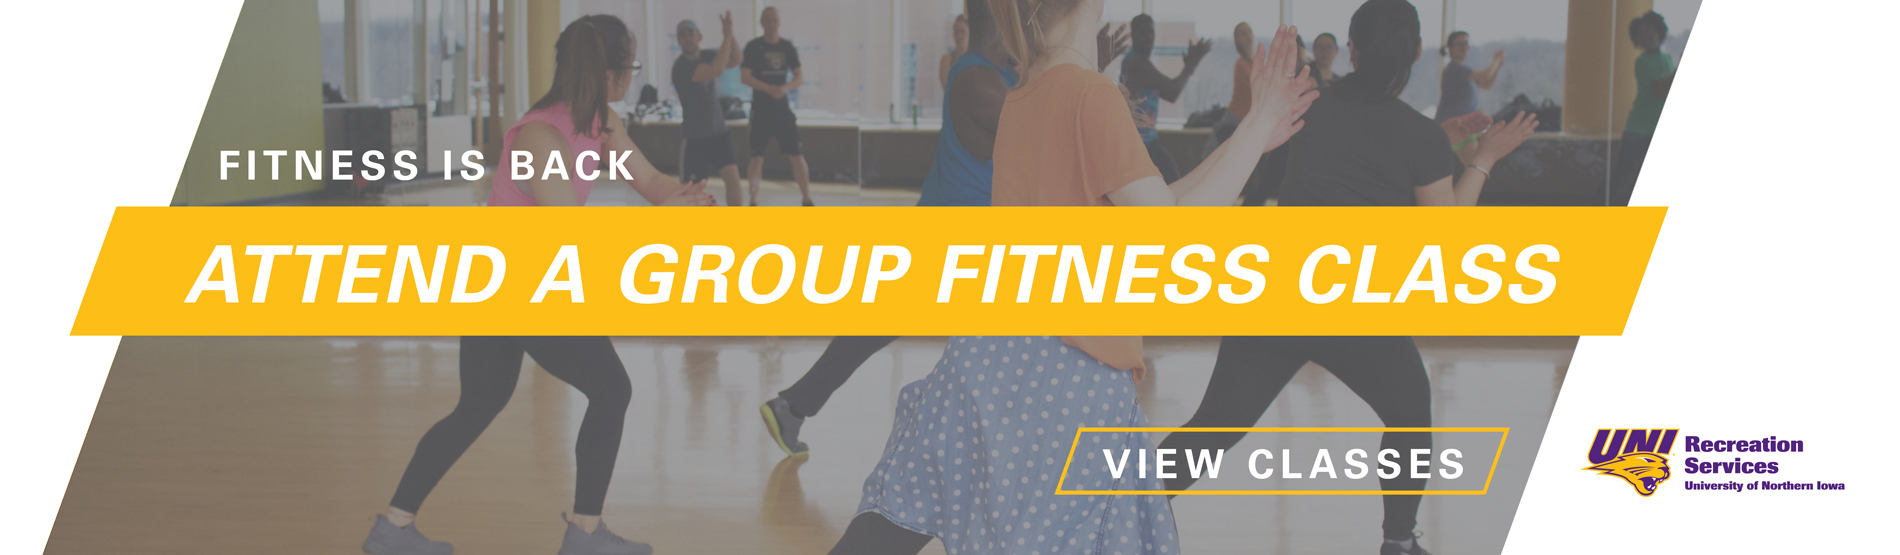 Fitness - Group Fitness Classes